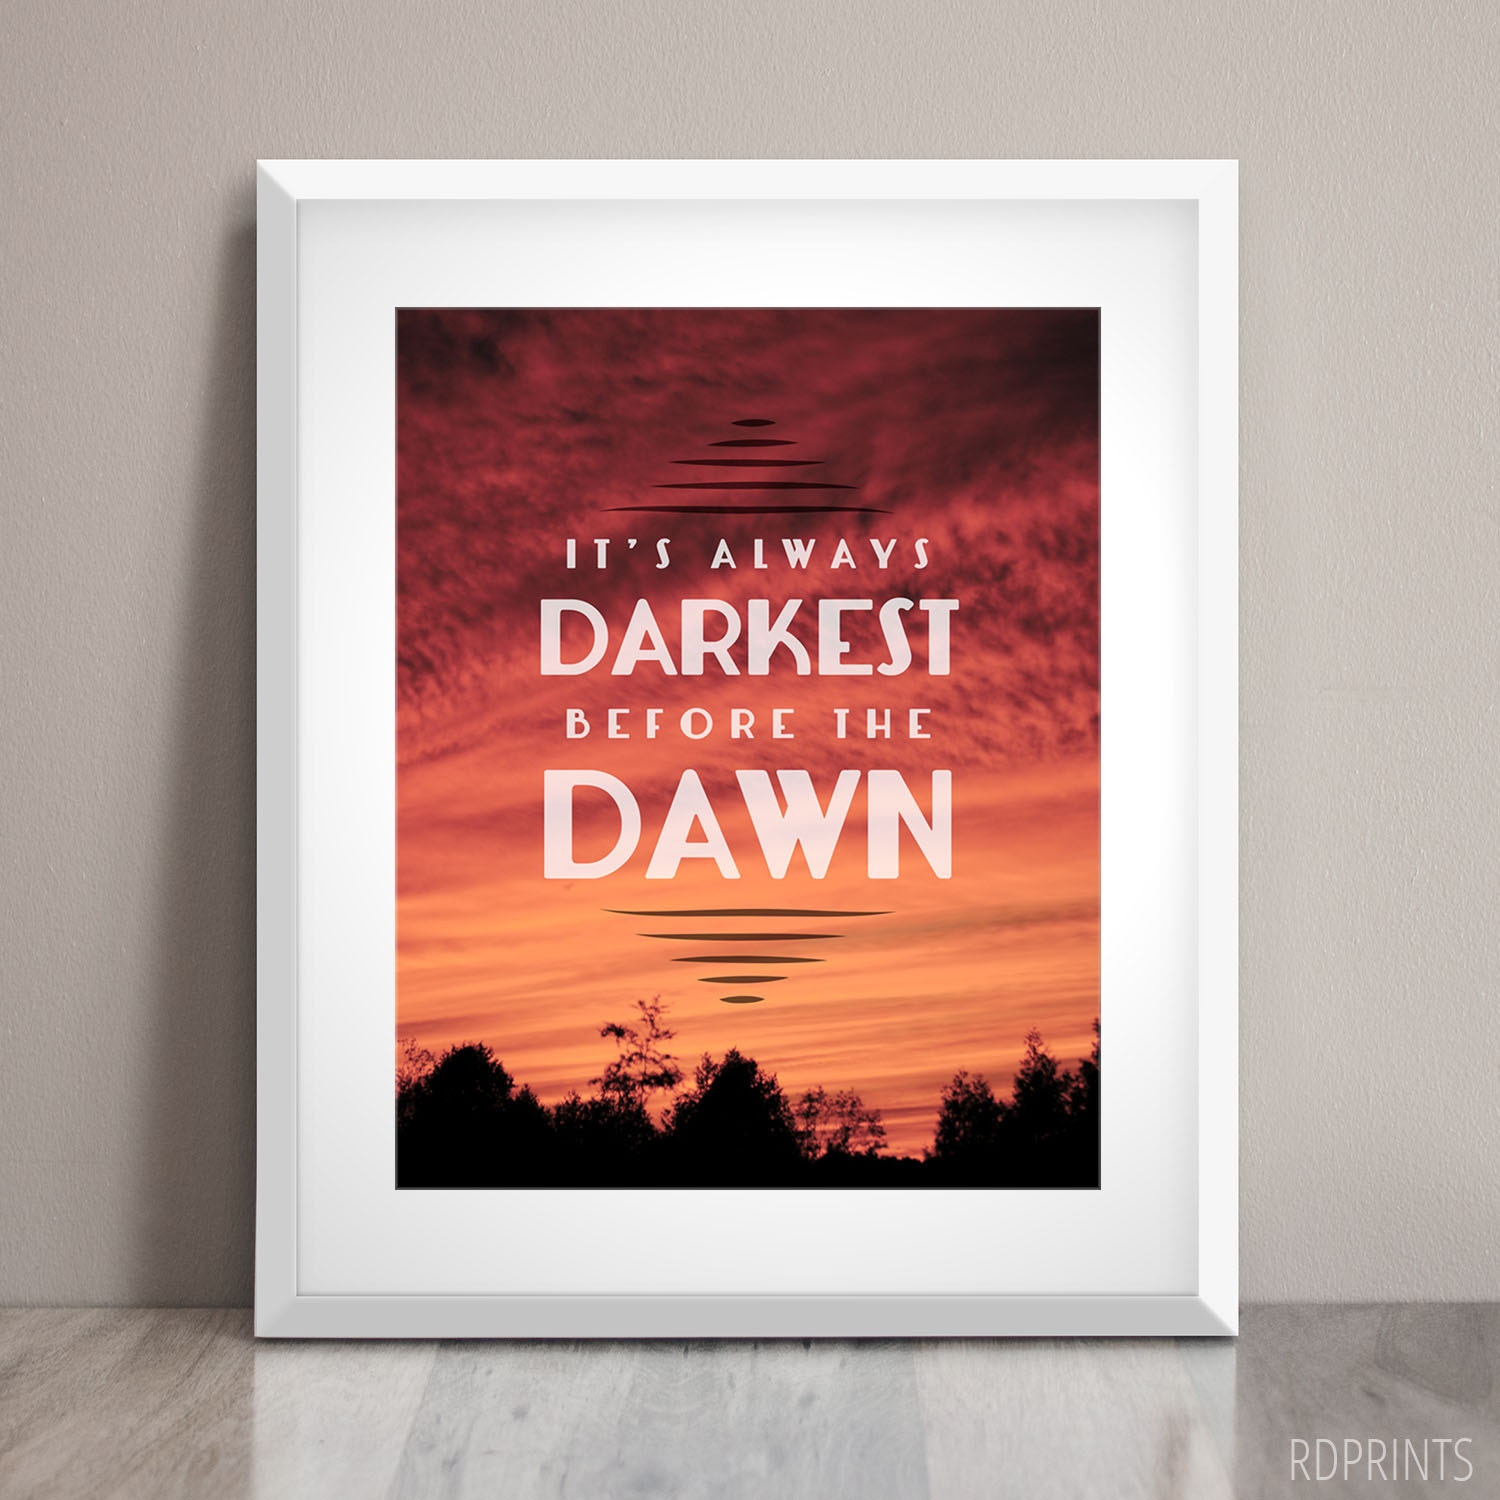 darkest before the dawn essay Short darkest before the dawn poems below are examples of the most popular short poems about darkest before the dawn by poetrysoup poets search short poems about darkest before the dawn by length and keyword.